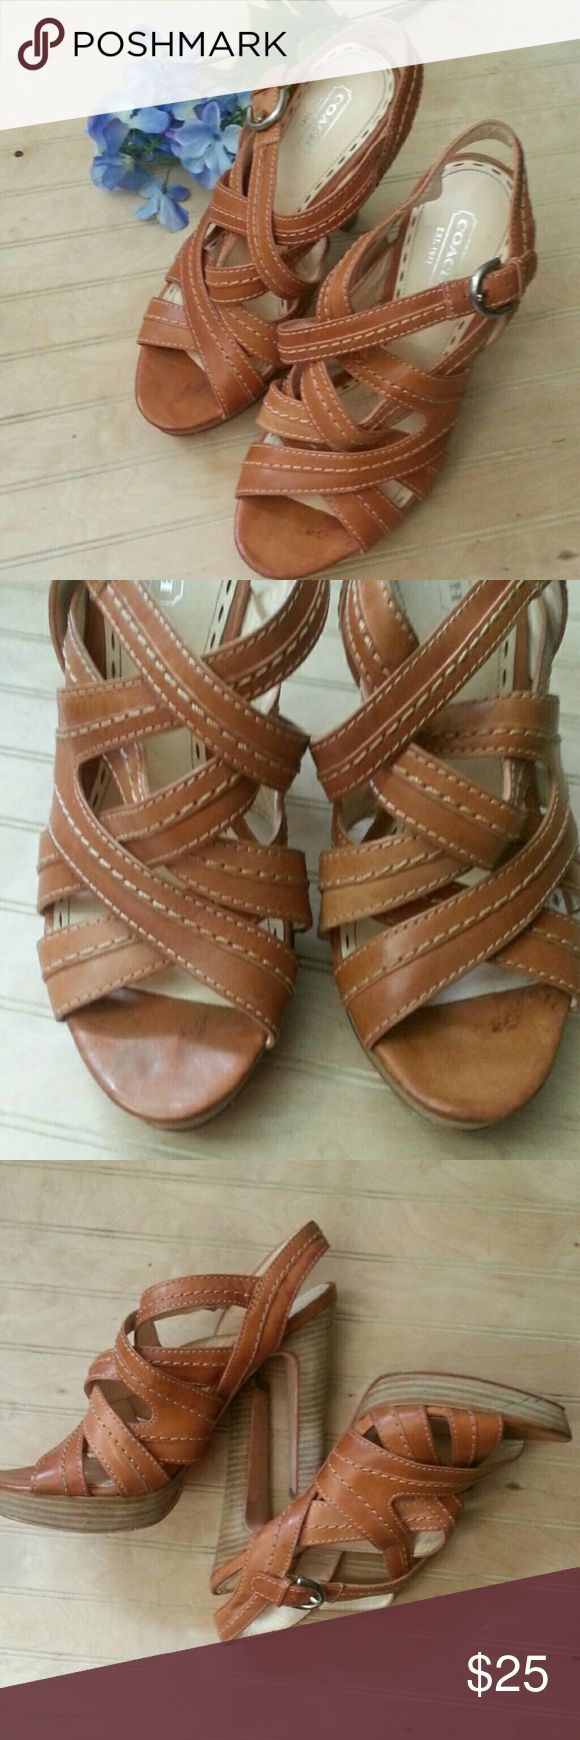 Coach Brynne Sandal Camel strappy heeled sandal. Wood heel, leather upper, adjustable strap at ankle. These have a few nicks and cosmetic issues, but nothing too noticeable.  Please look carefully at the photos. Coach Shoes Sandals